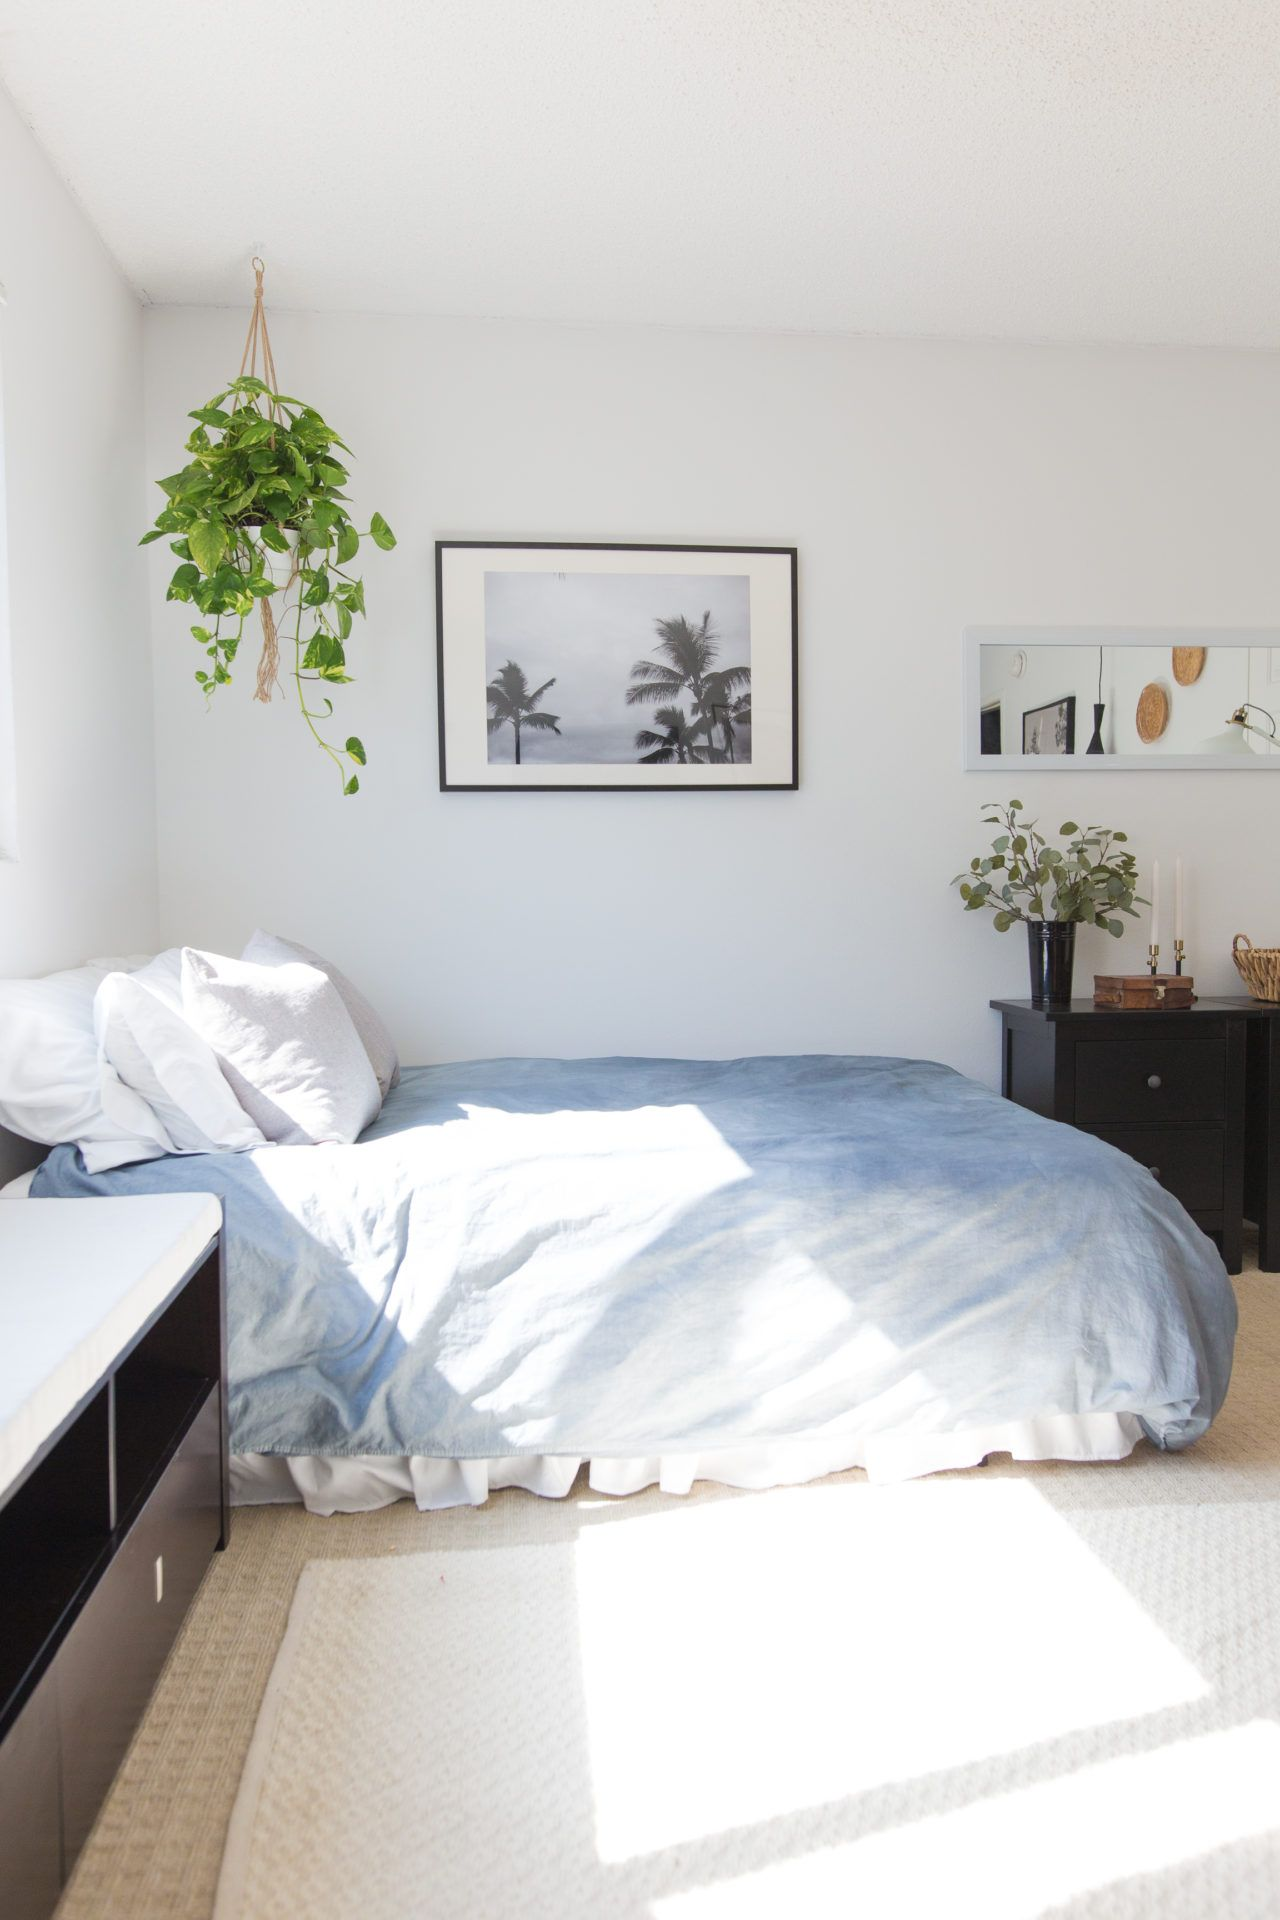 Don't have a headboard? Check out these super and simple